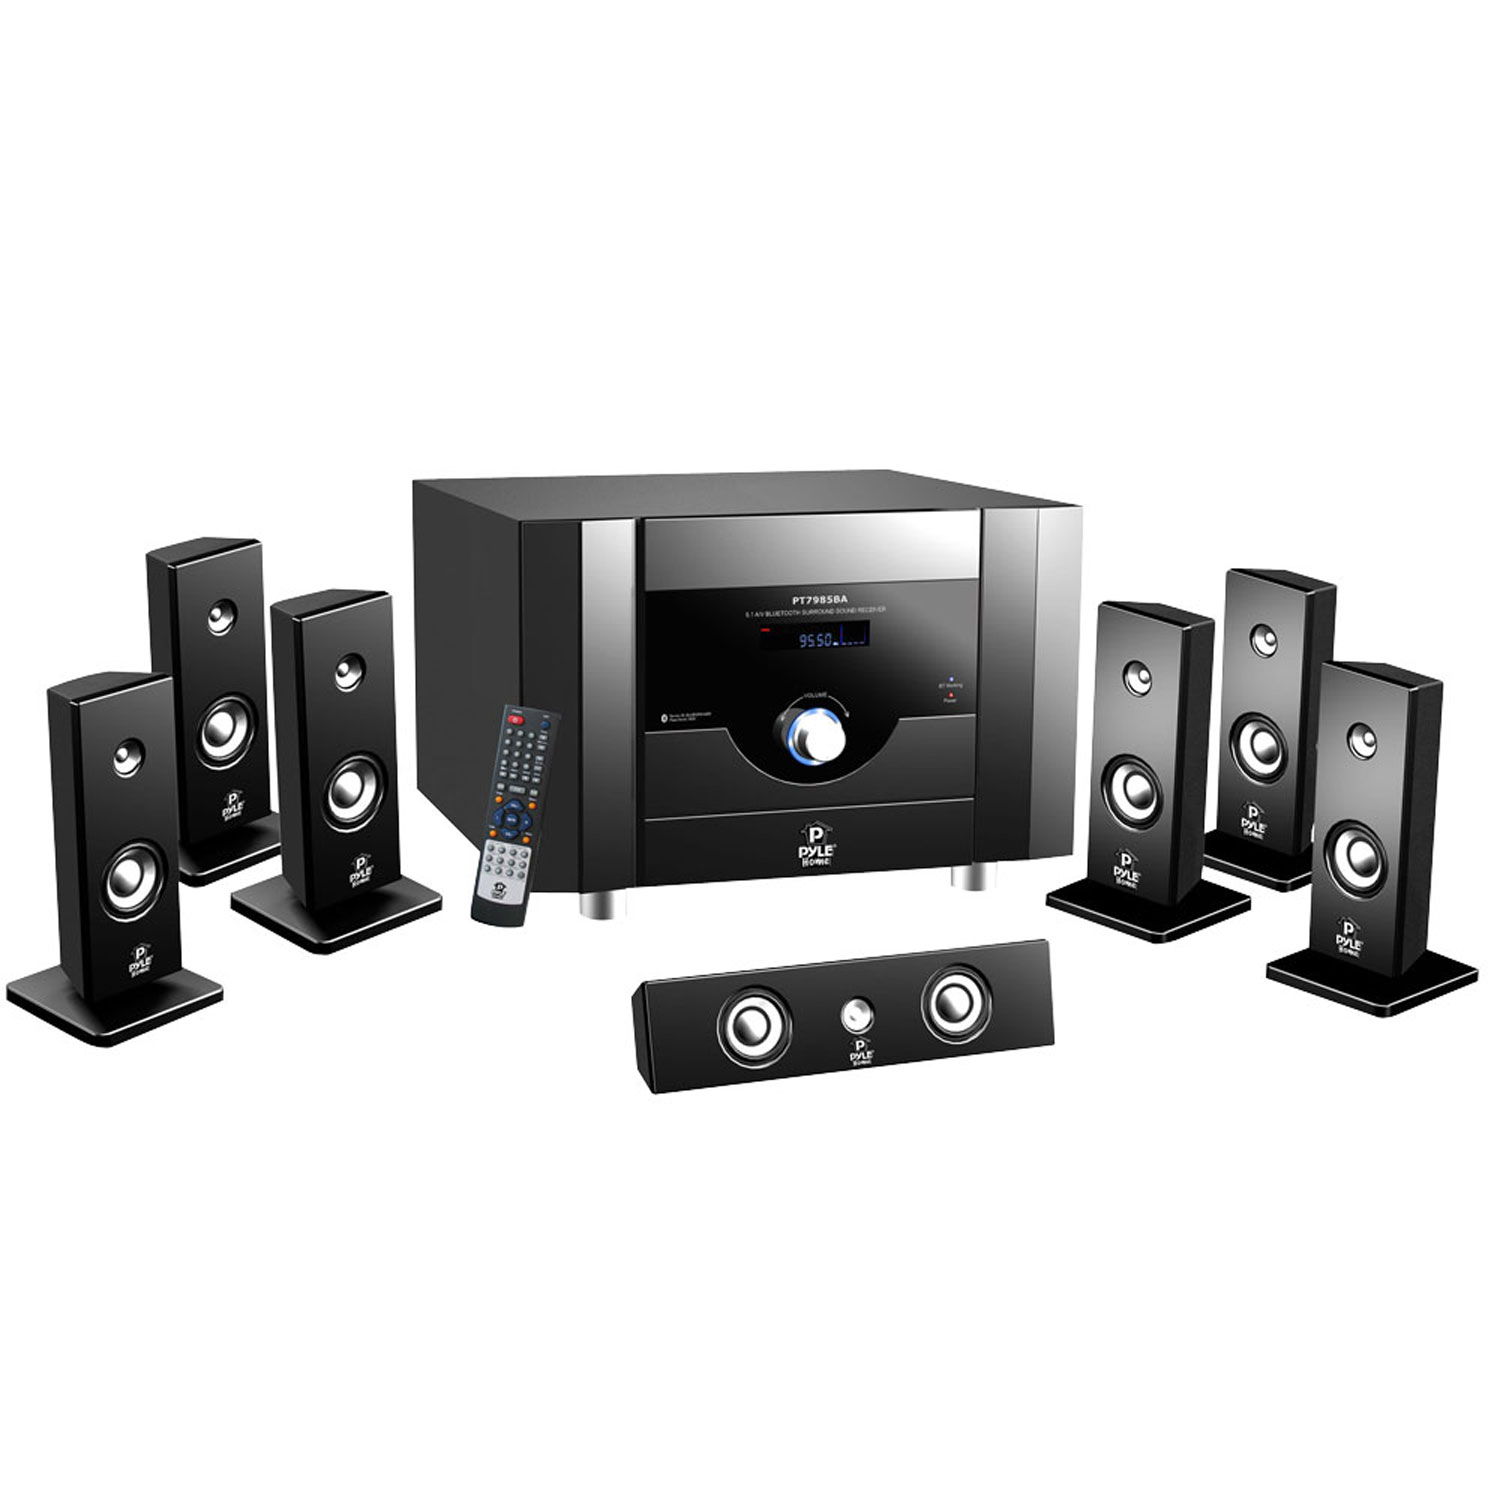 Pyle 7.1 Channel Home Theater System with Satellite Speakers, Center Channel, Subwoofer, BT, FM Tuner by Pyle